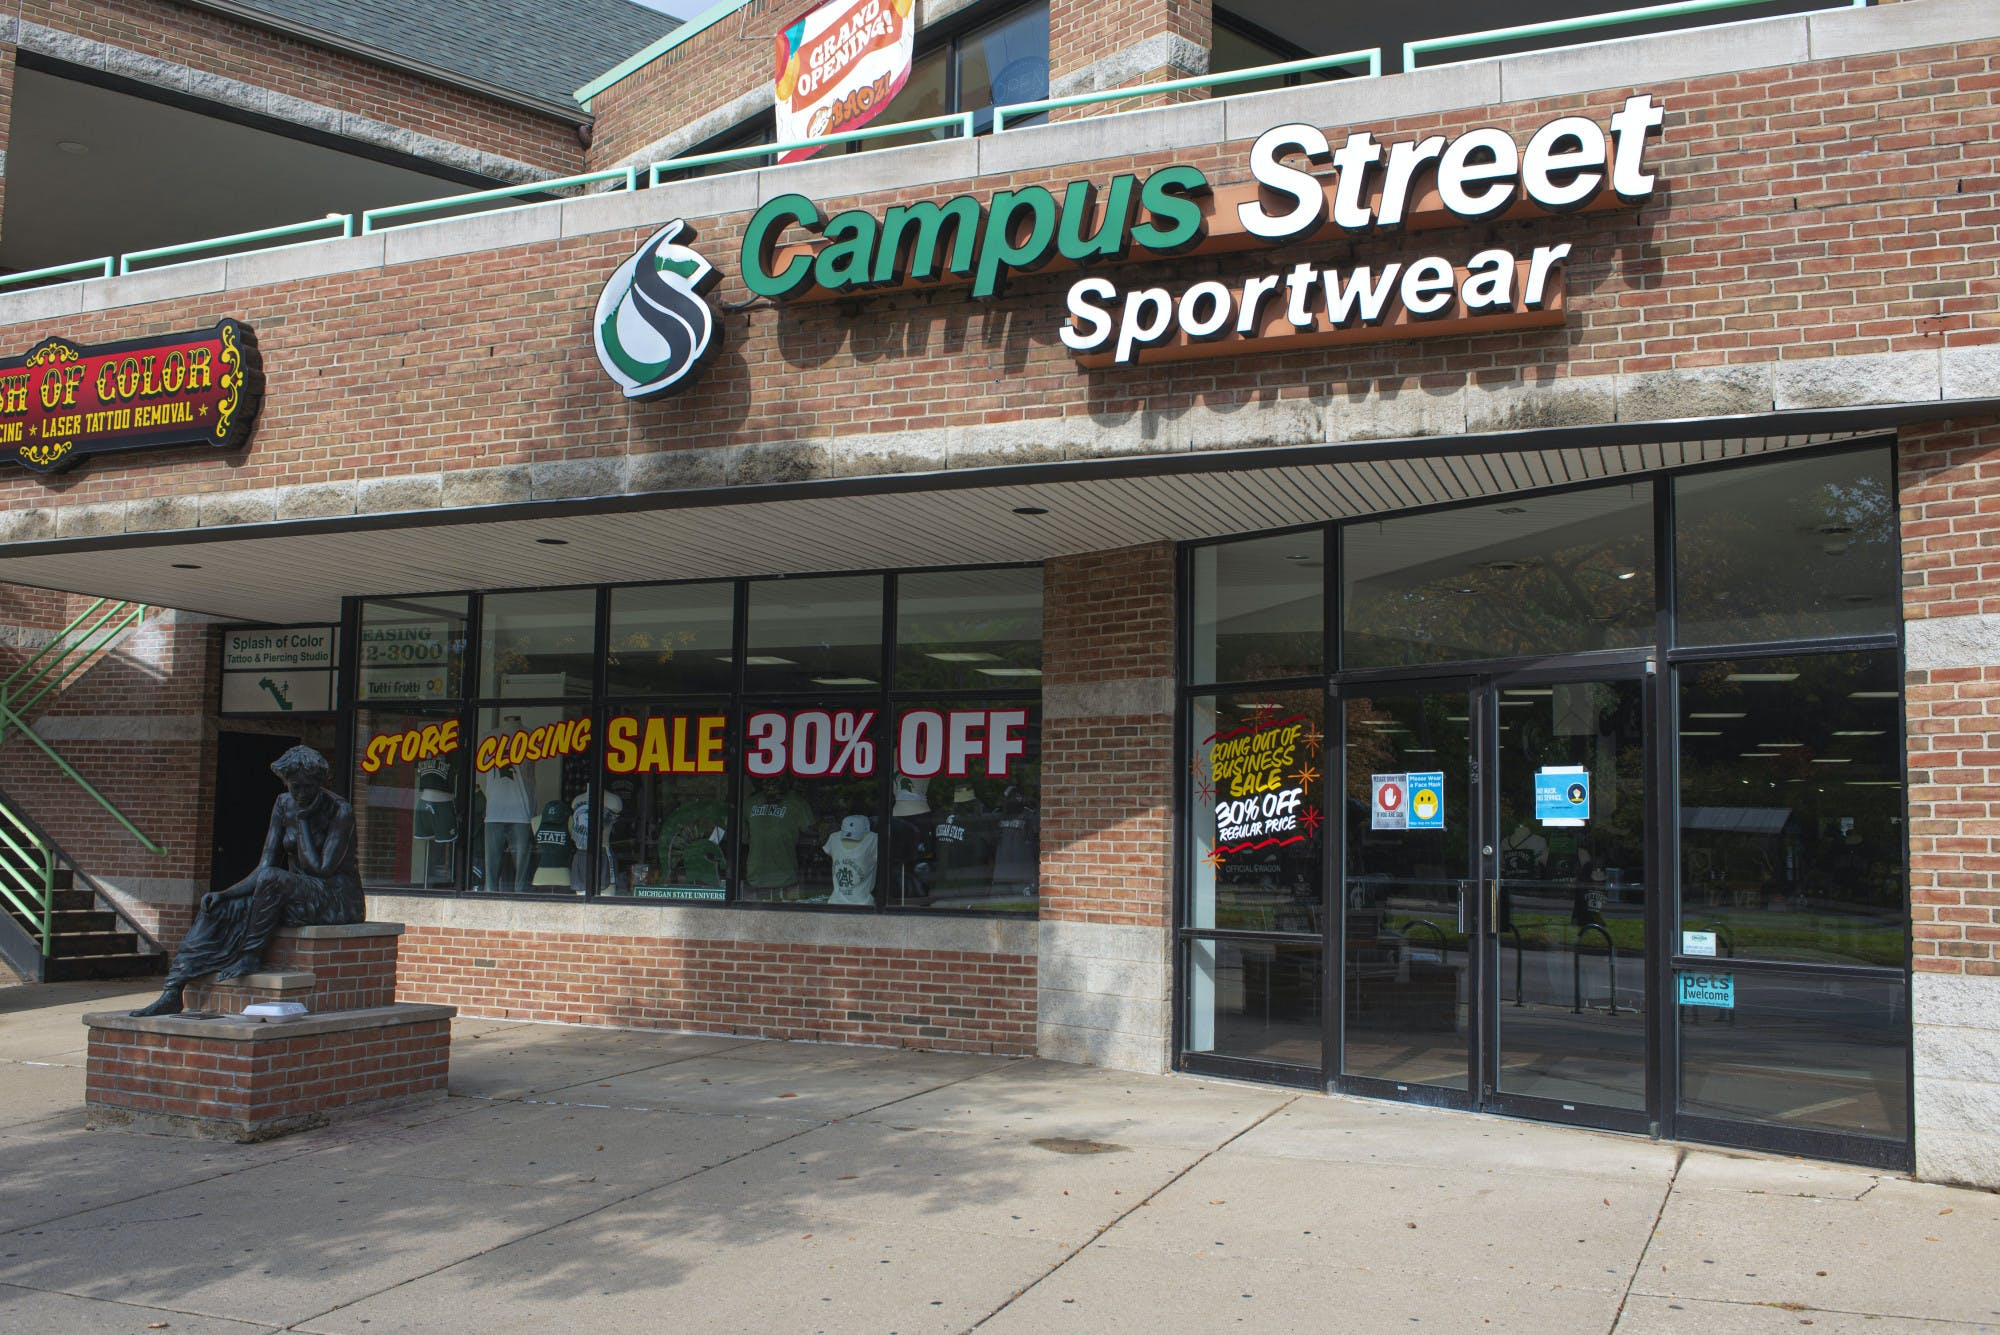 A brick building is pictured with window signs that read, 'store closing,' 'sale 30% off,' 'Going out of business sale 30% off at regular price.' Above the doorway to the building is a large sign that reads 'Campus Street Sportswear.'